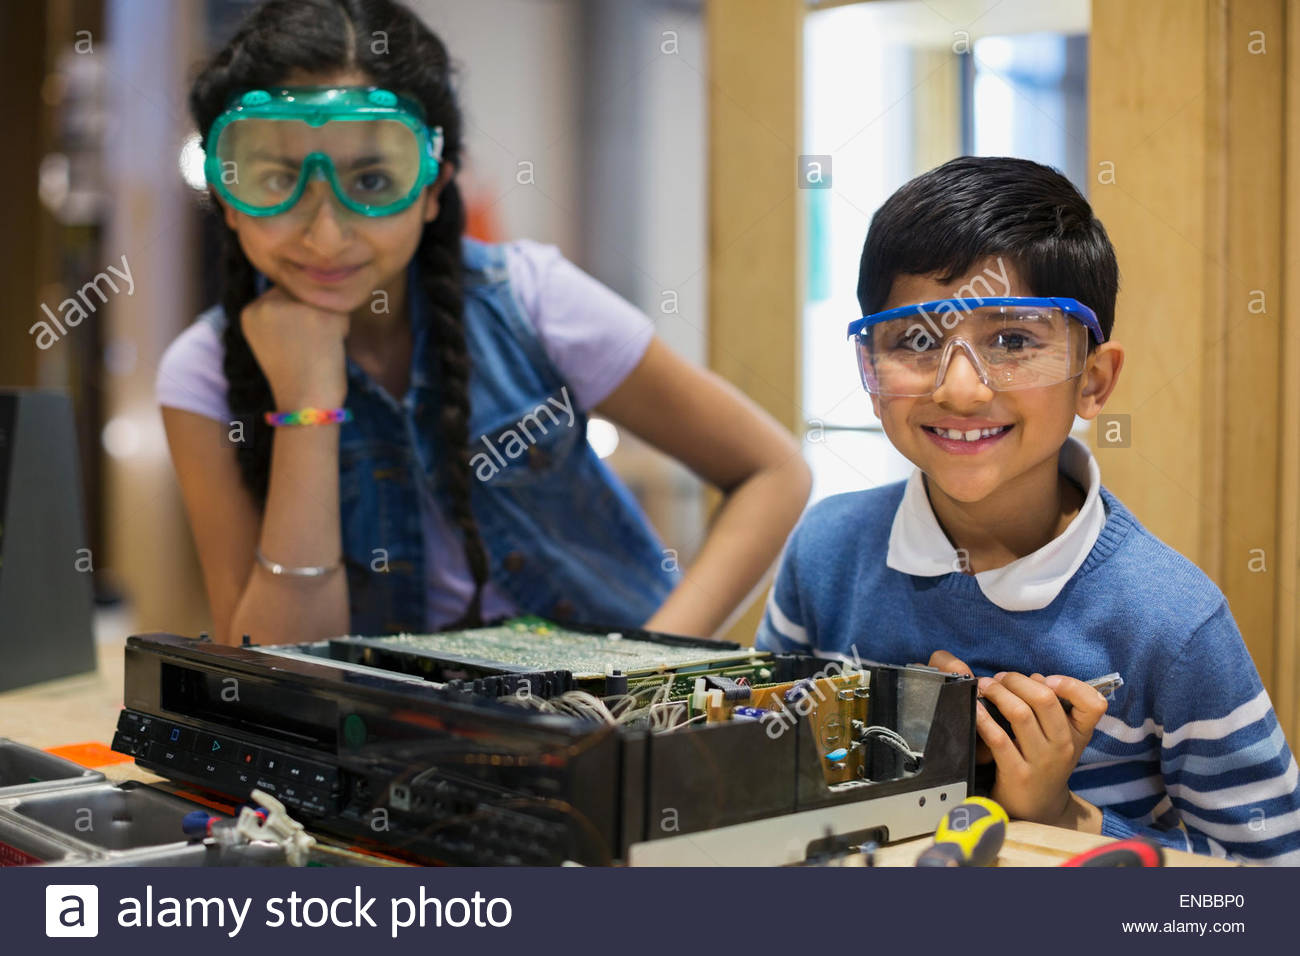 Portrait of confident brother and sister assembling electronics - Stock Image